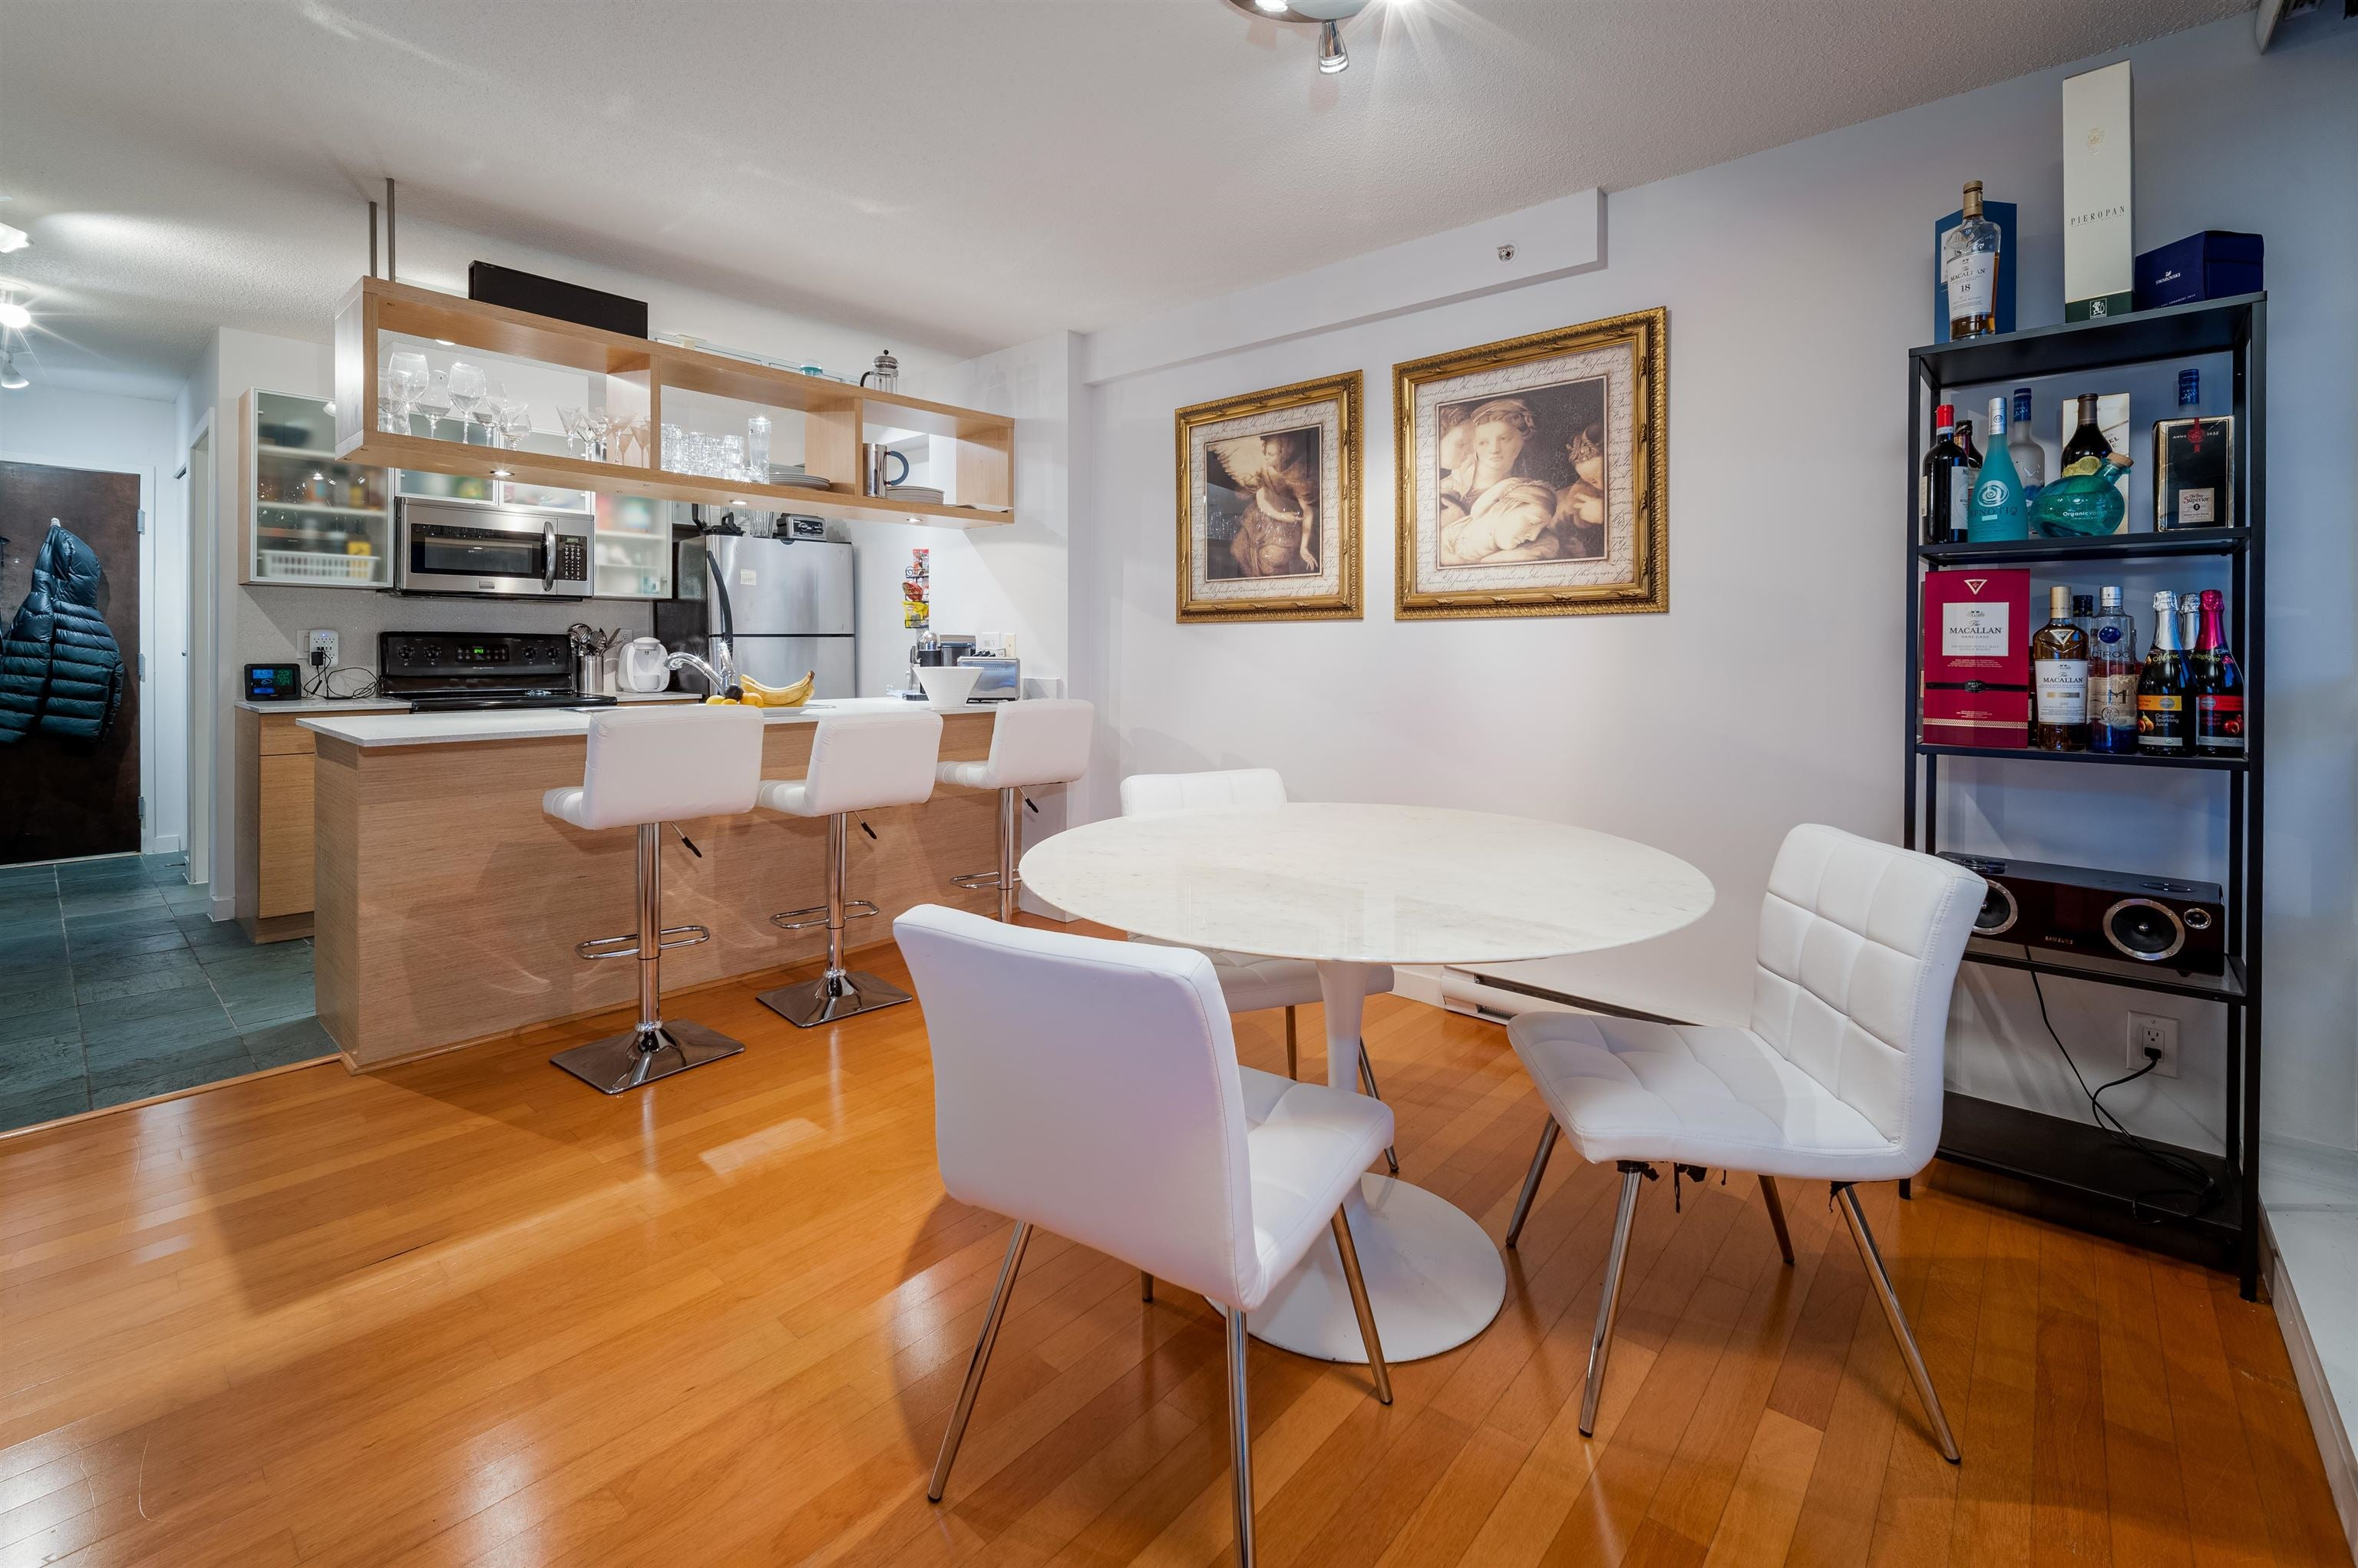 PH2308 938 SMITHE STREET - Downtown VW Apartment/Condo for sale, 2 Bedrooms (R2615960) - #1